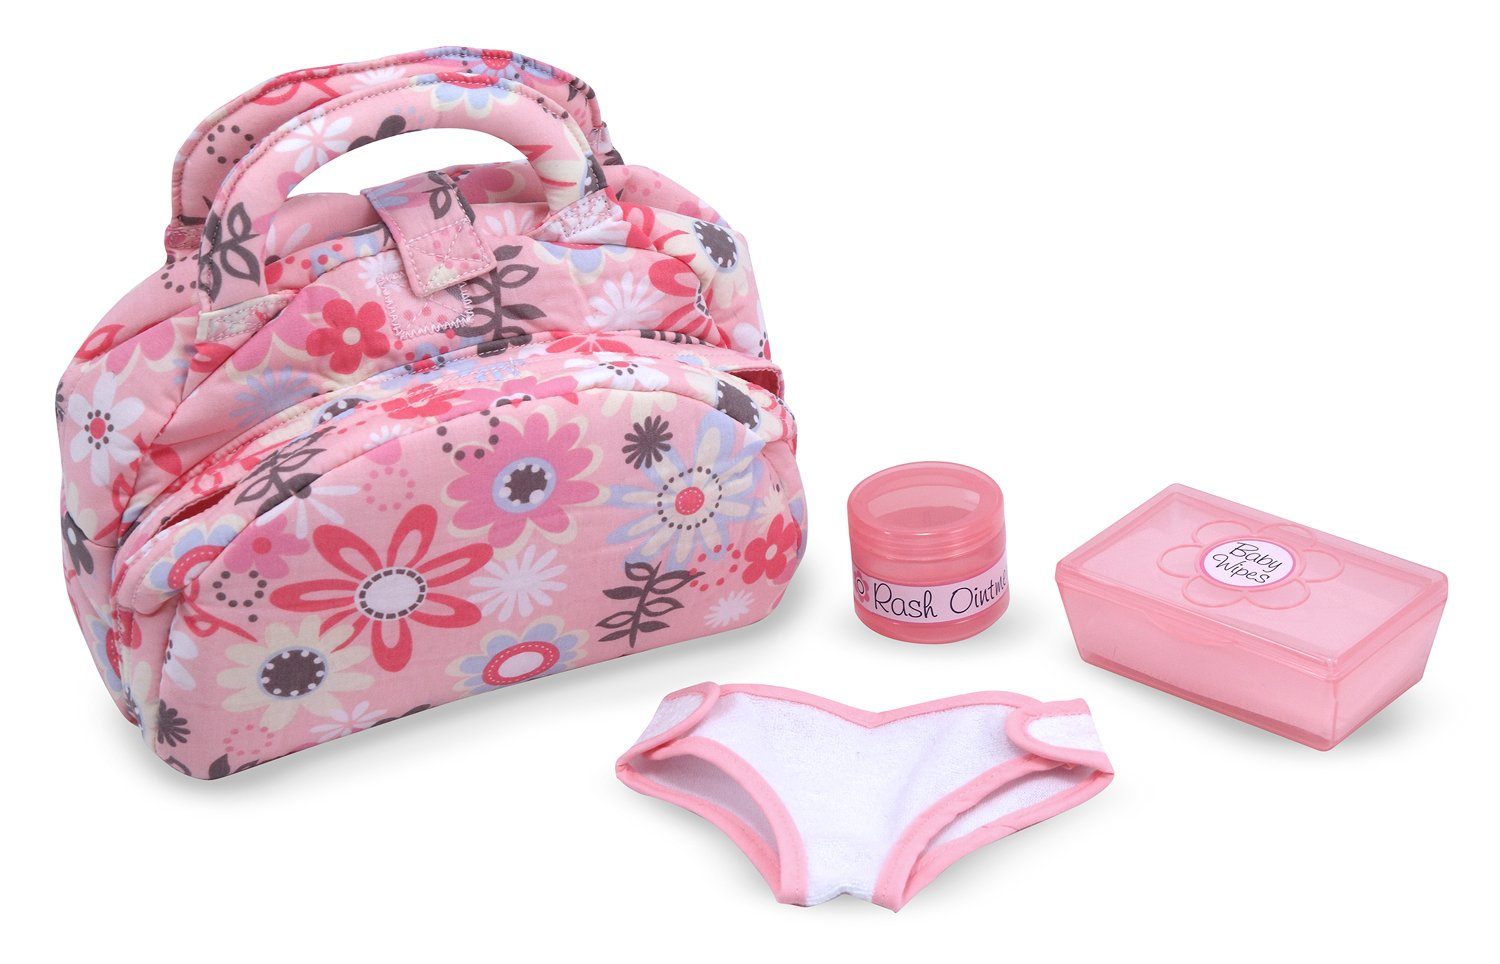 Melissa & Doug Mine to Love Doll Diaper Changing Set With Bag, Wipes, Accessories (7 pcs) by Melissa & Doug (Image #1)